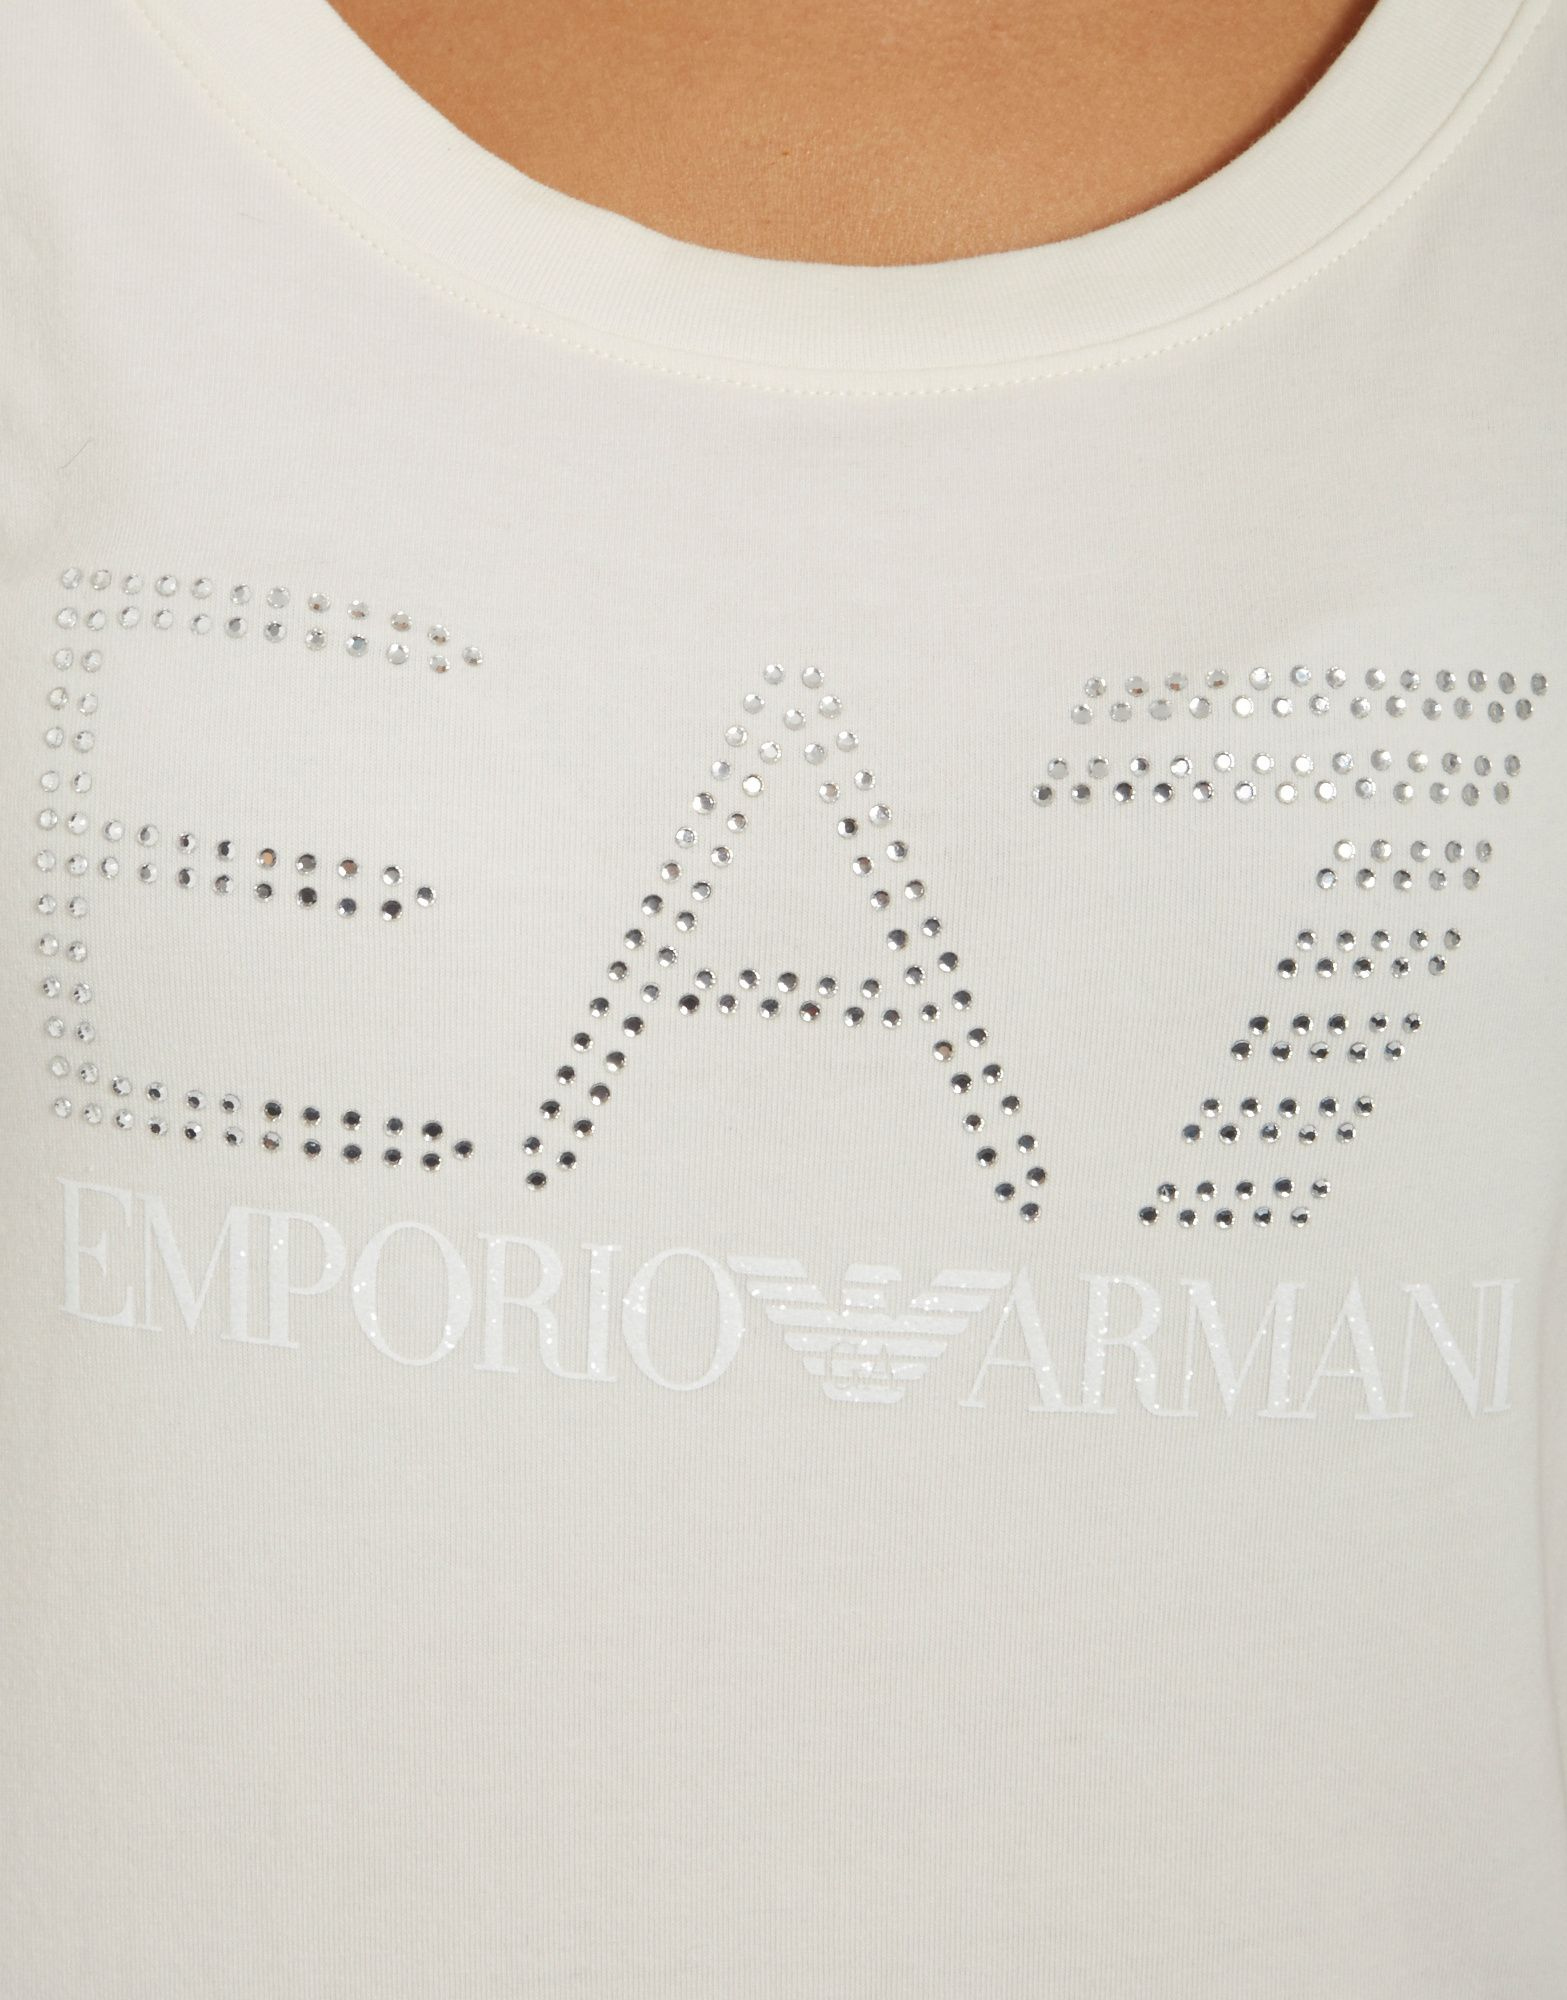 Emporio Armani EA7 Graphic Strass T-Shirt